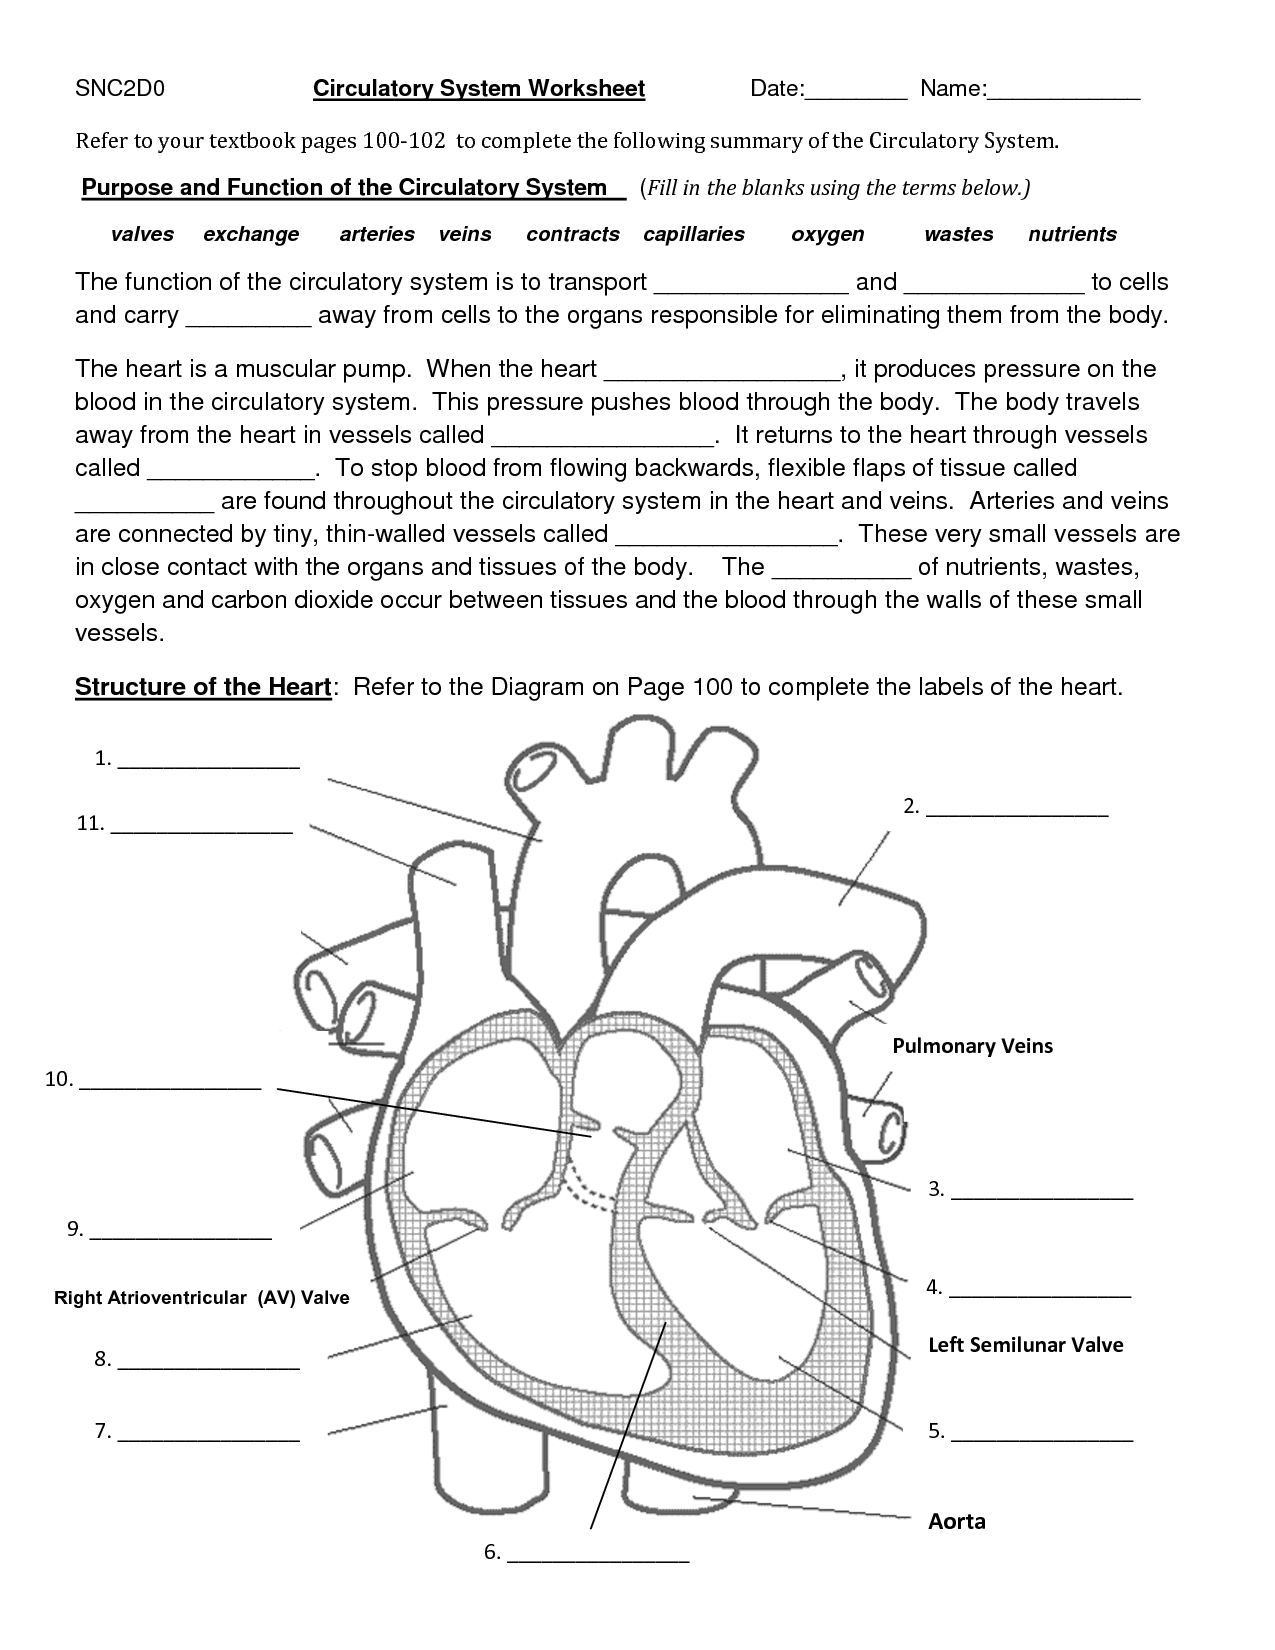 Worksheets Respiratory System Labeling Worksheet Answers free lung worksheets respiratory system homeschool stuff circulatory worksheet